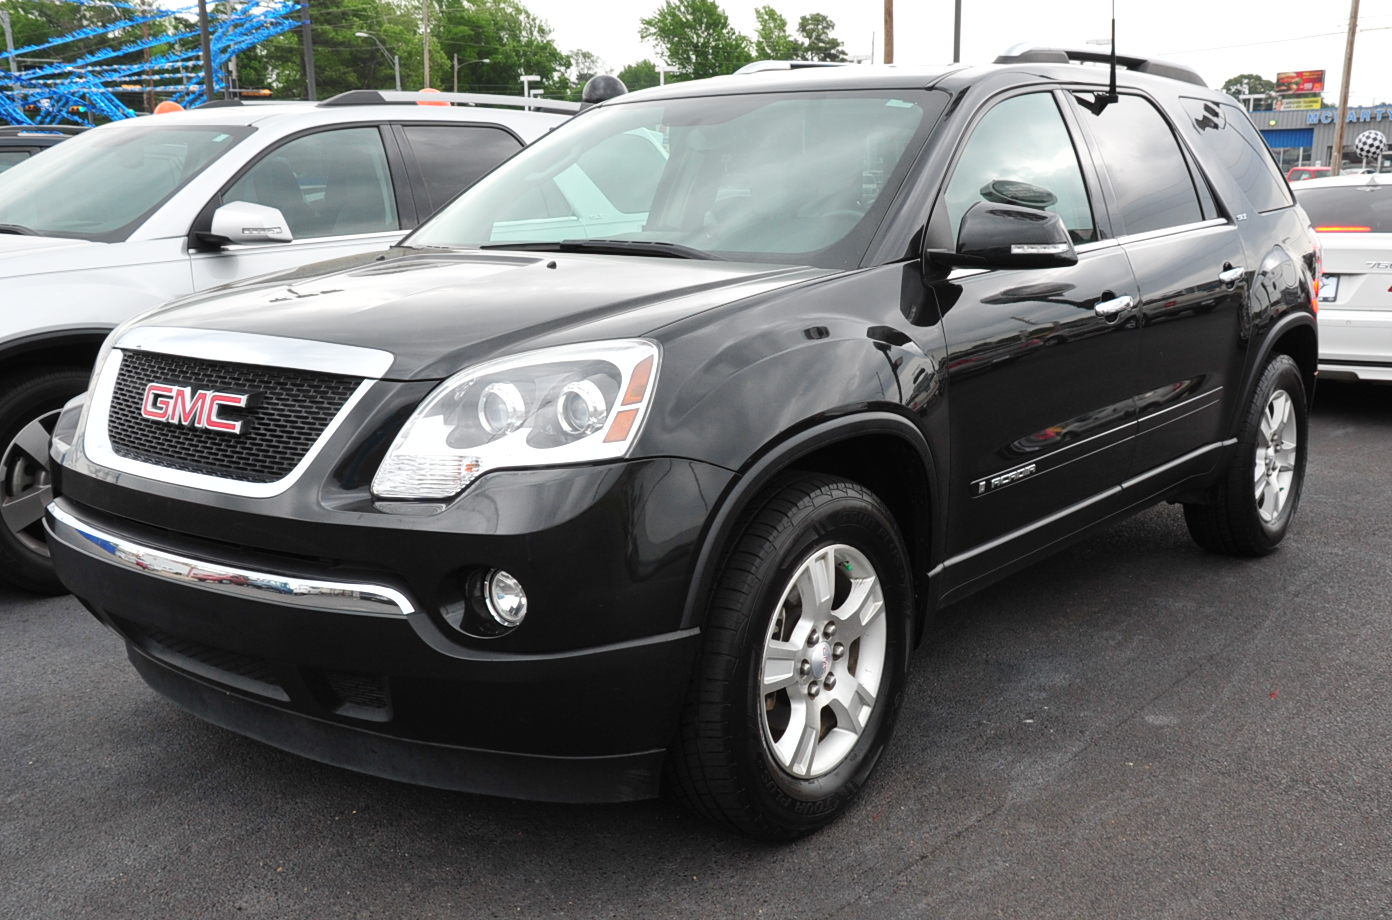 2008 gmc acadia pictures information and specs auto. Black Bedroom Furniture Sets. Home Design Ideas